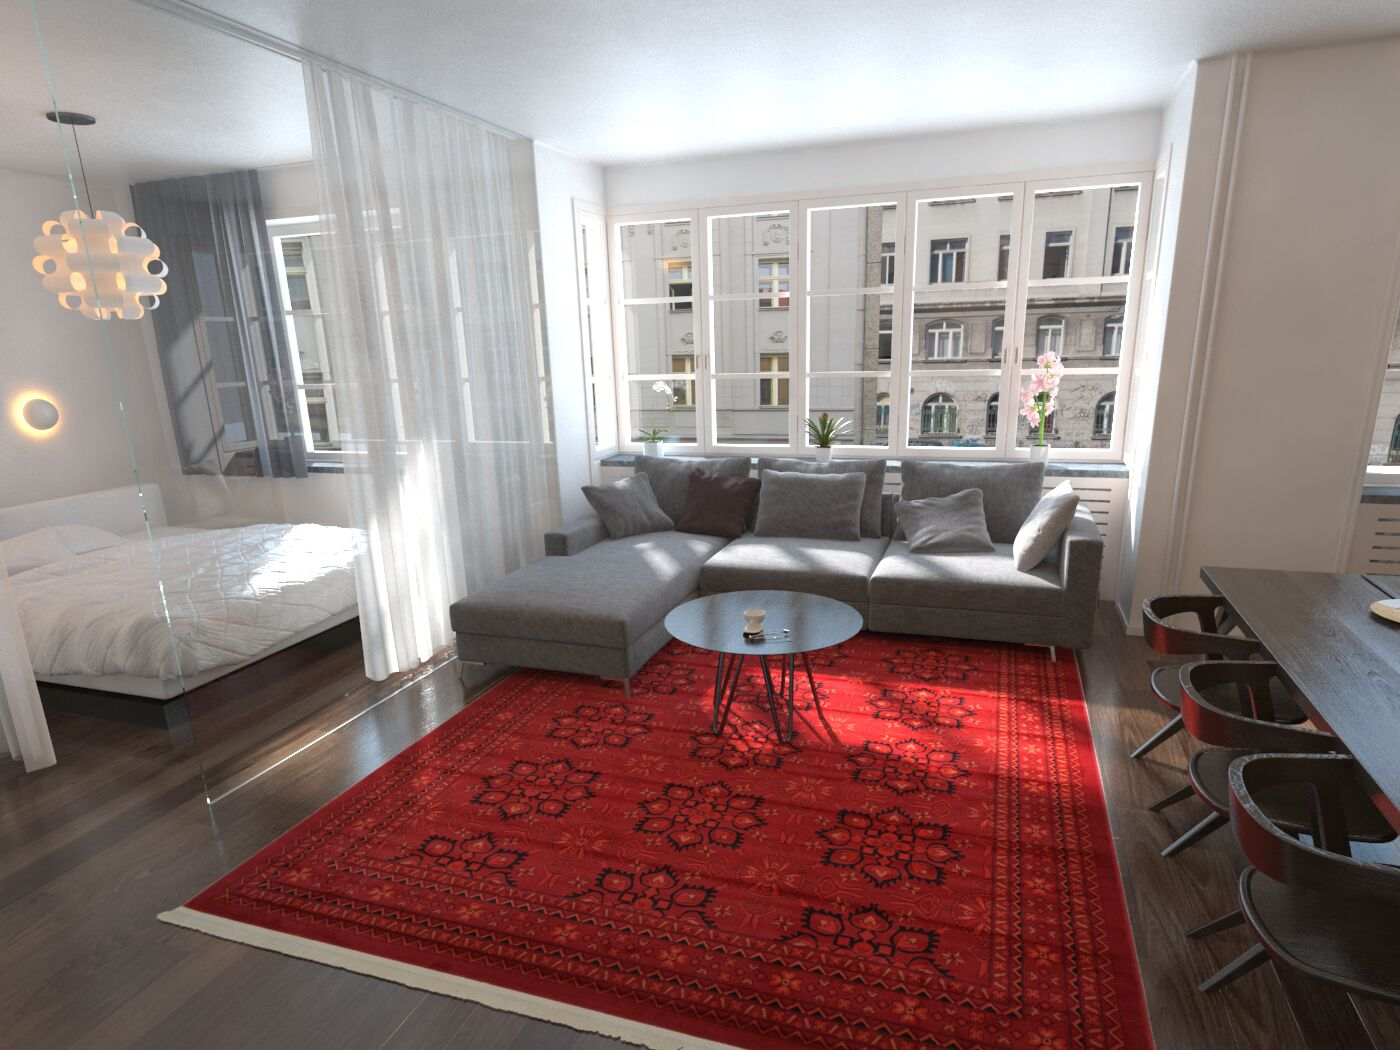 Kowloon Red Area Rug Rug Size: Runner 2'7